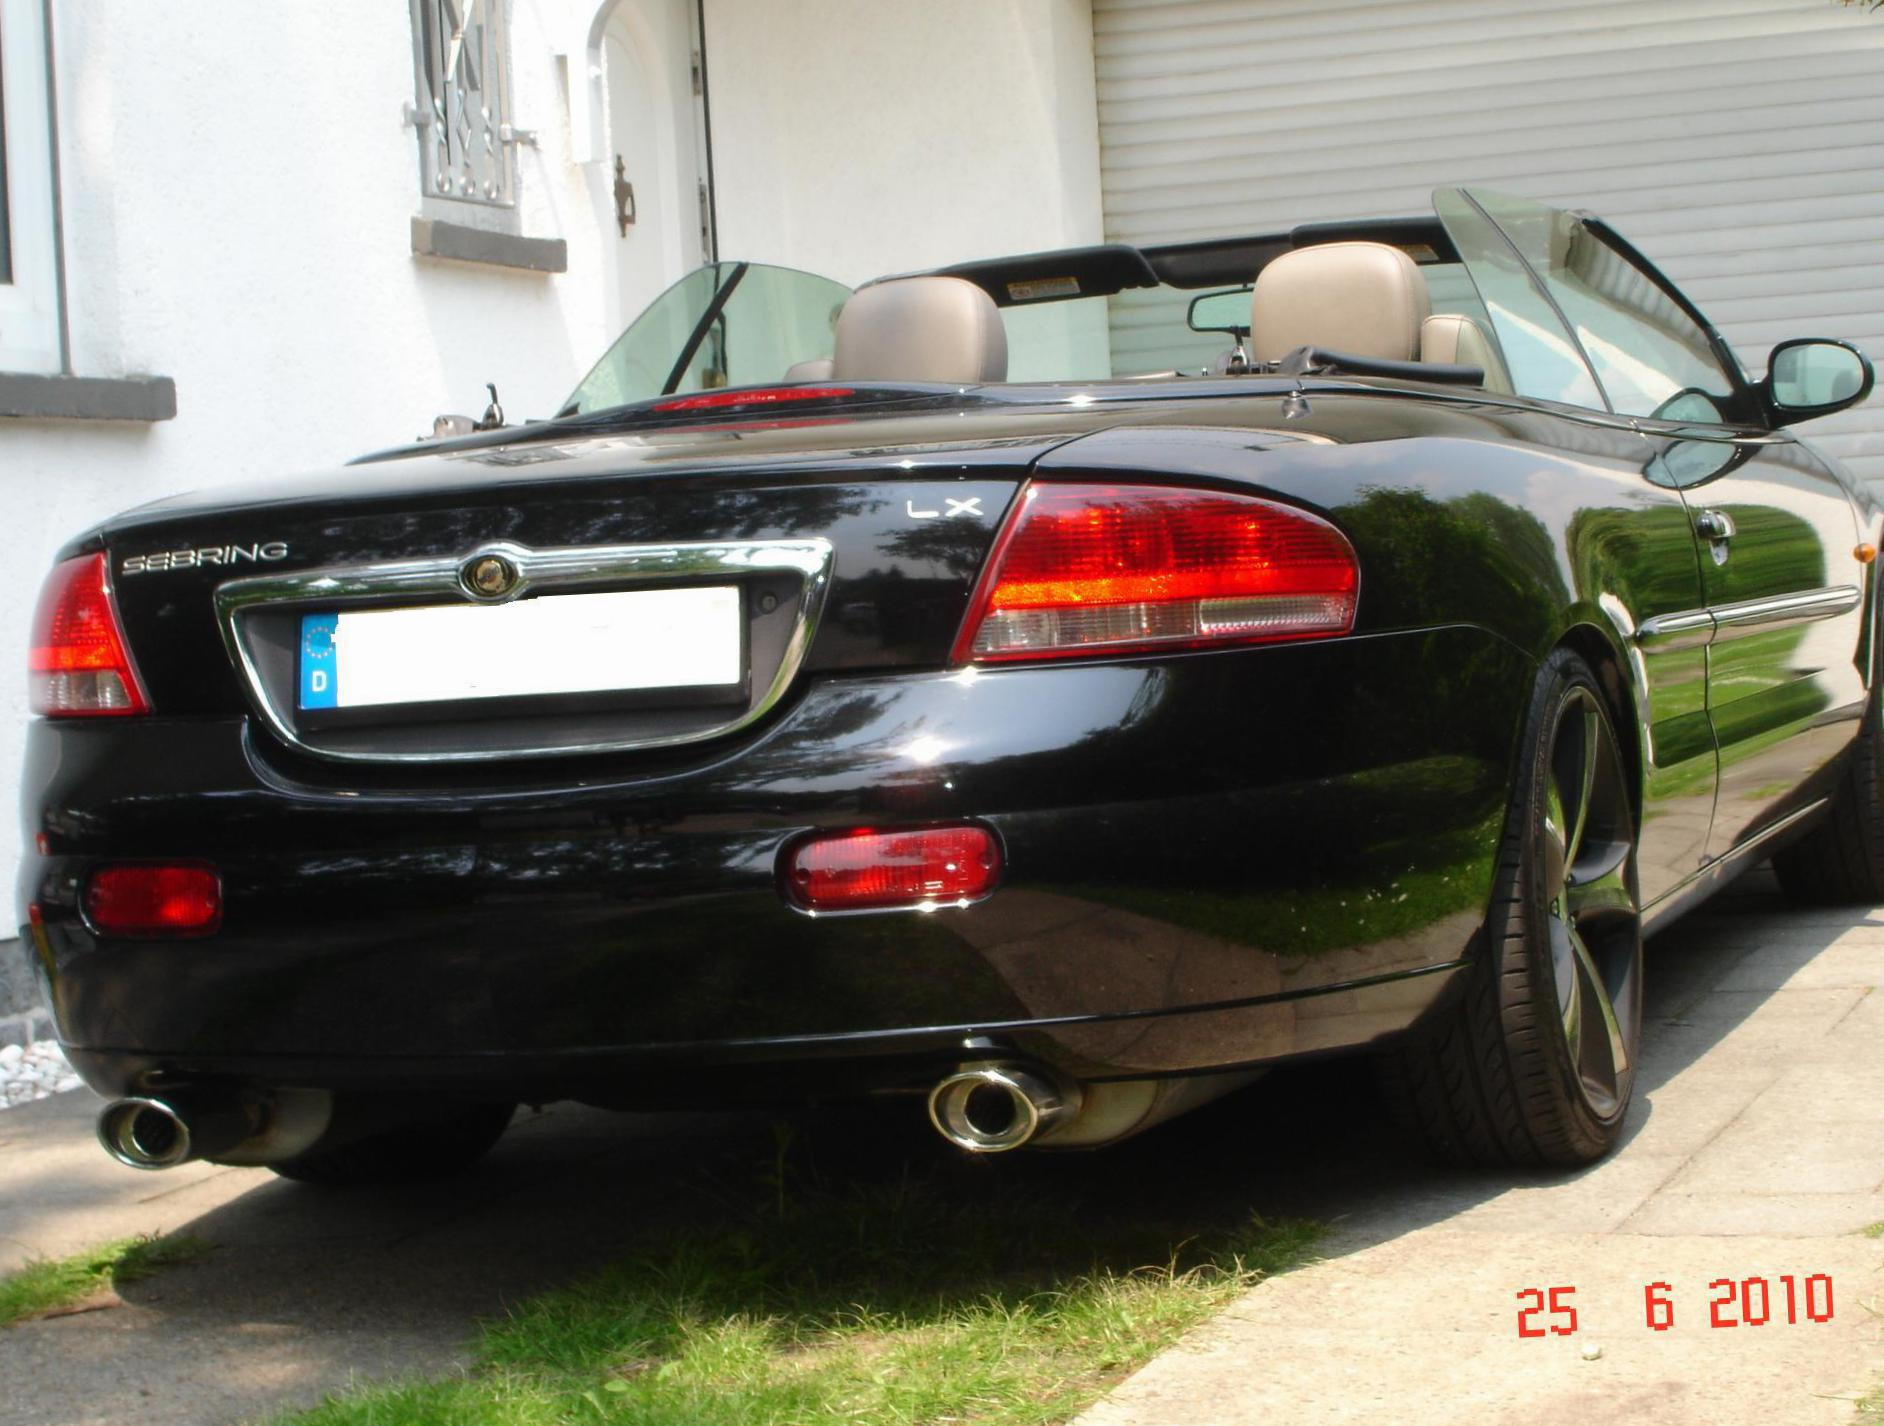 chrysler sebring cabrio photos and specs photo sebring cabrio chrysler parts and 24 perfect. Black Bedroom Furniture Sets. Home Design Ideas